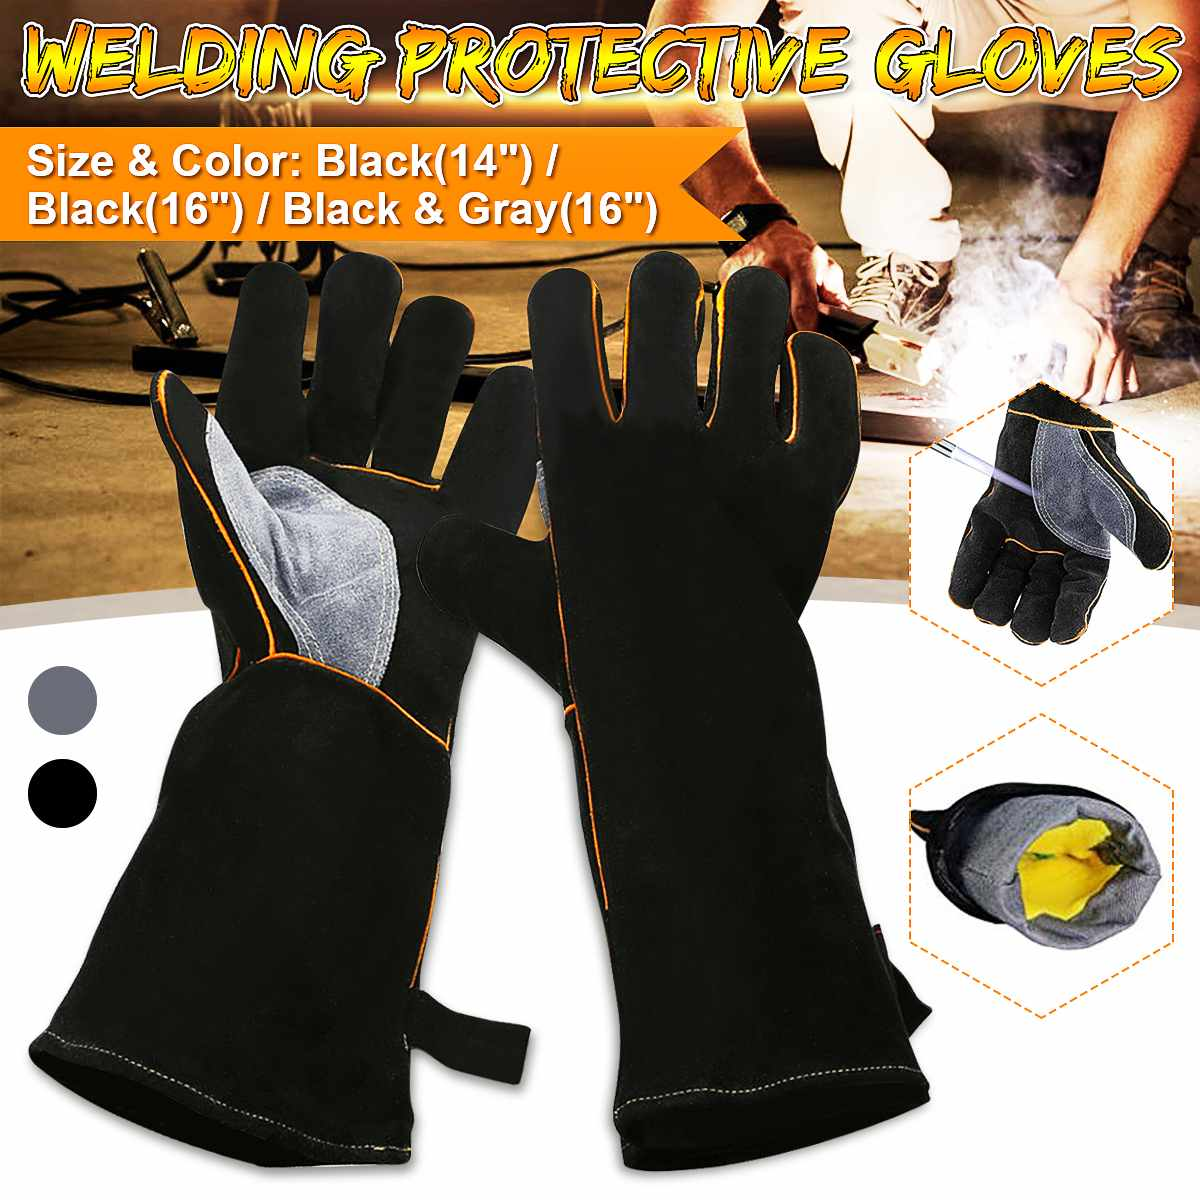 14inch/16inch Work Welding Gloves Heat Resistant For Welders/Workers/Fireplace/Stove/BBQ/Gardening/DIY Wood Working